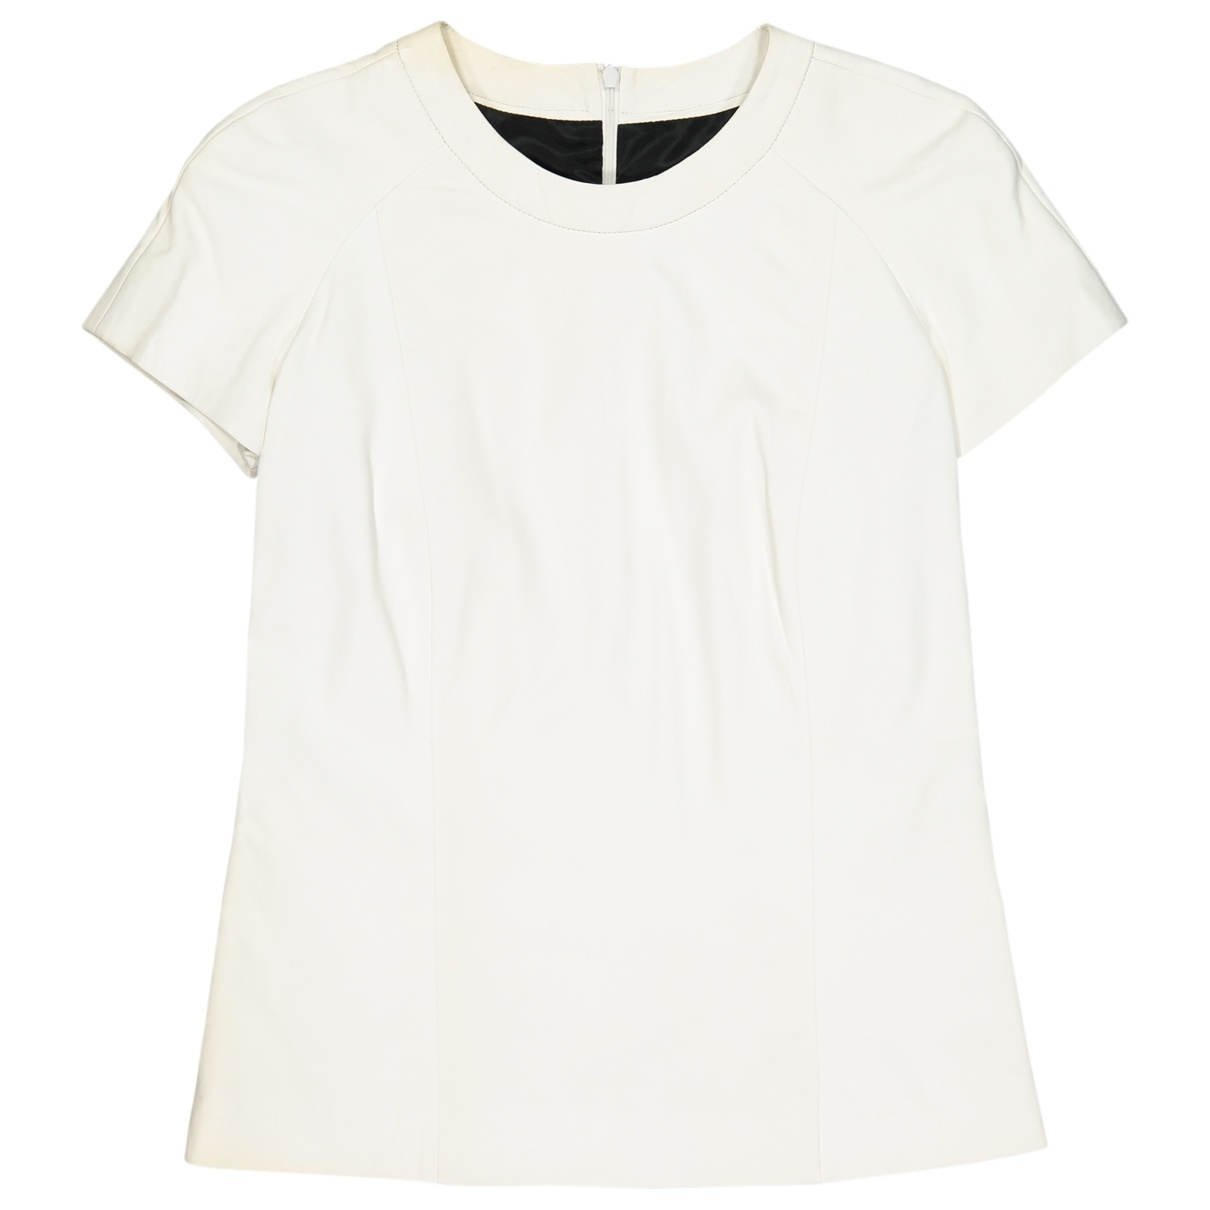 Barbara Bui \N White Leather  top for Women 36 FR